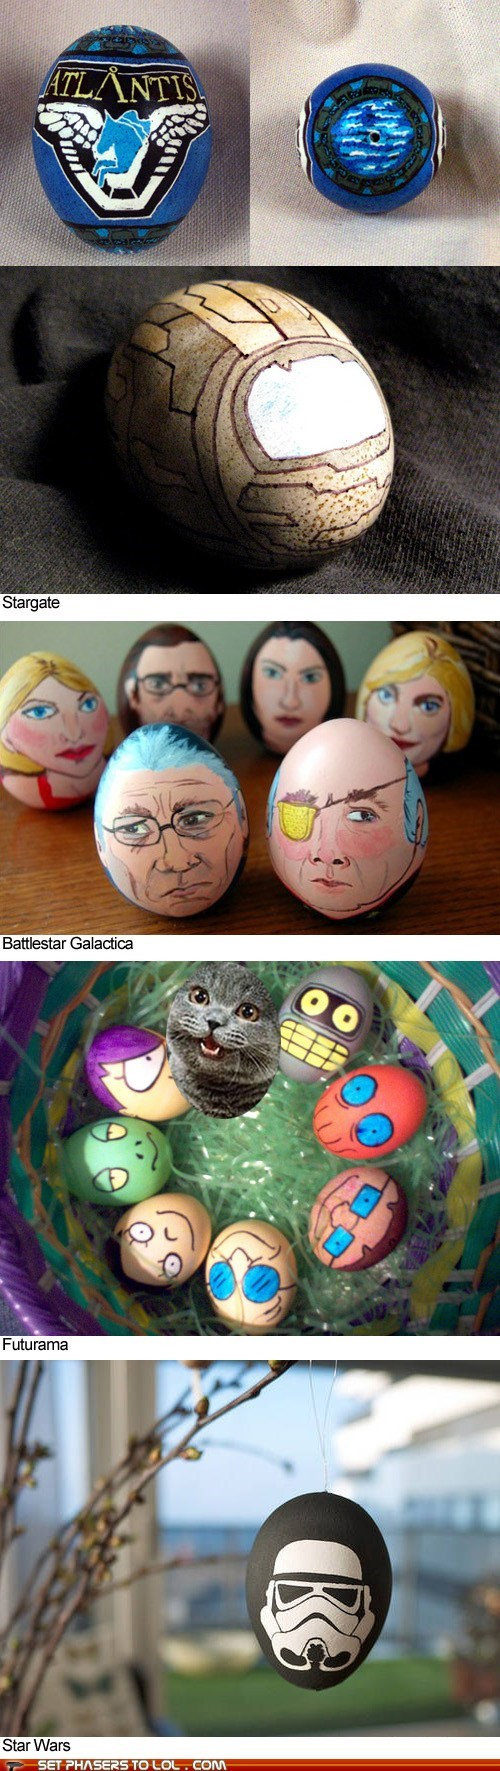 Battlestar Galactica dye easter easter eggs futurama geeky science fiction star wars Stargate - 6079170816